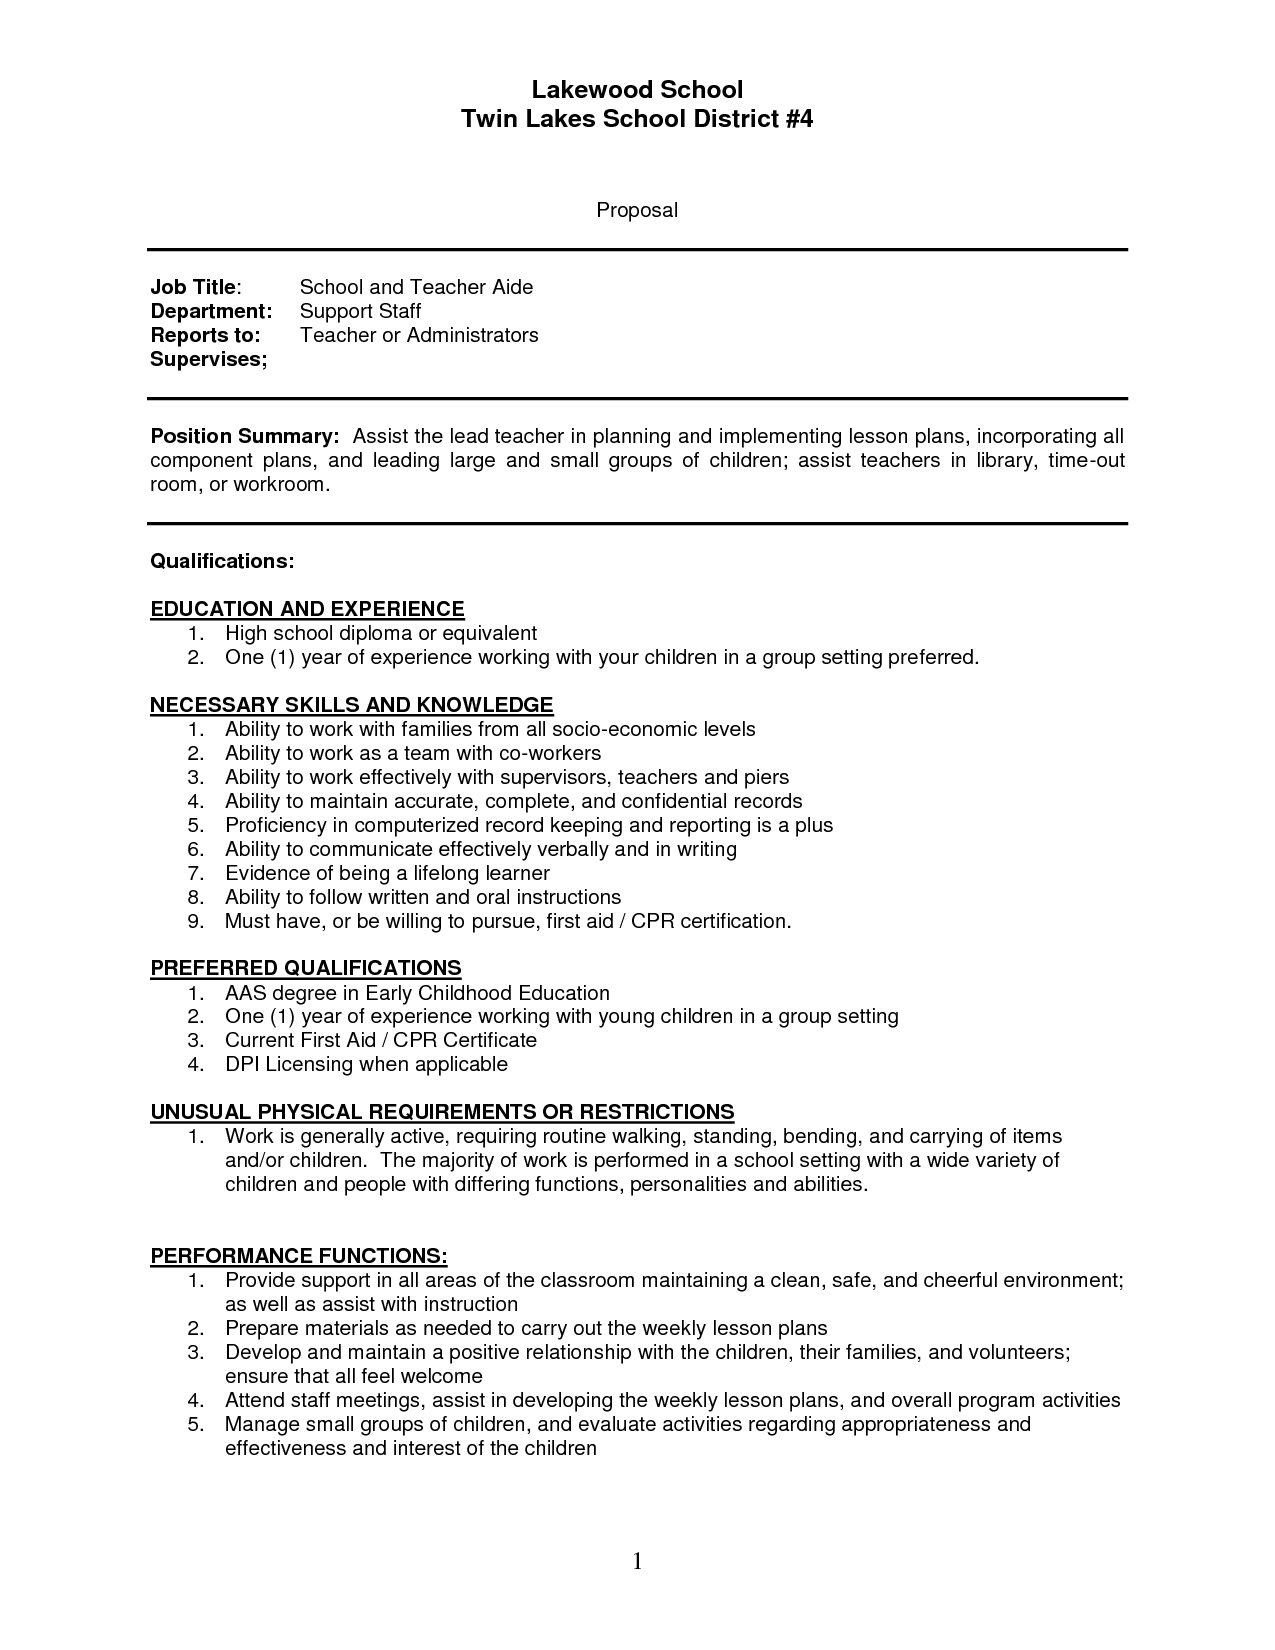 How To Write A Resume Objective For A Teaching Position Teacher Assistant Sample Resume Sample Resume Of Teachers